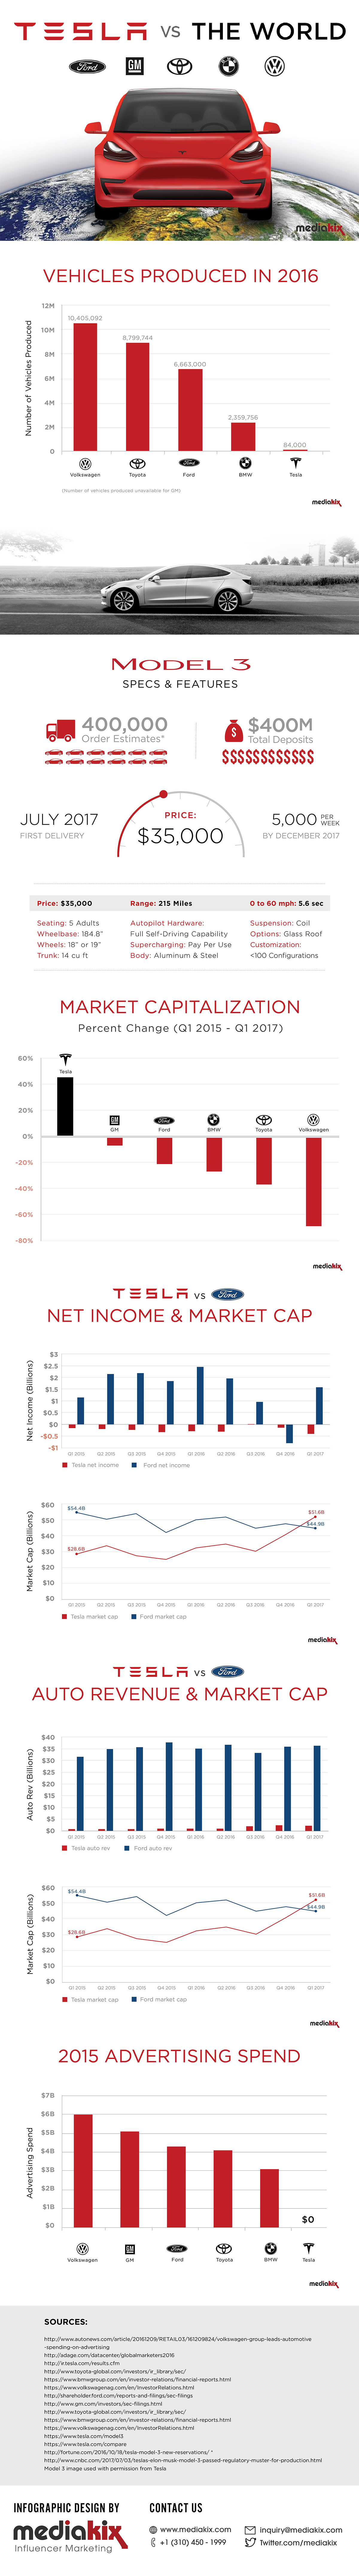 Who's the Winner: Tesla Vs The Rest - Infographic